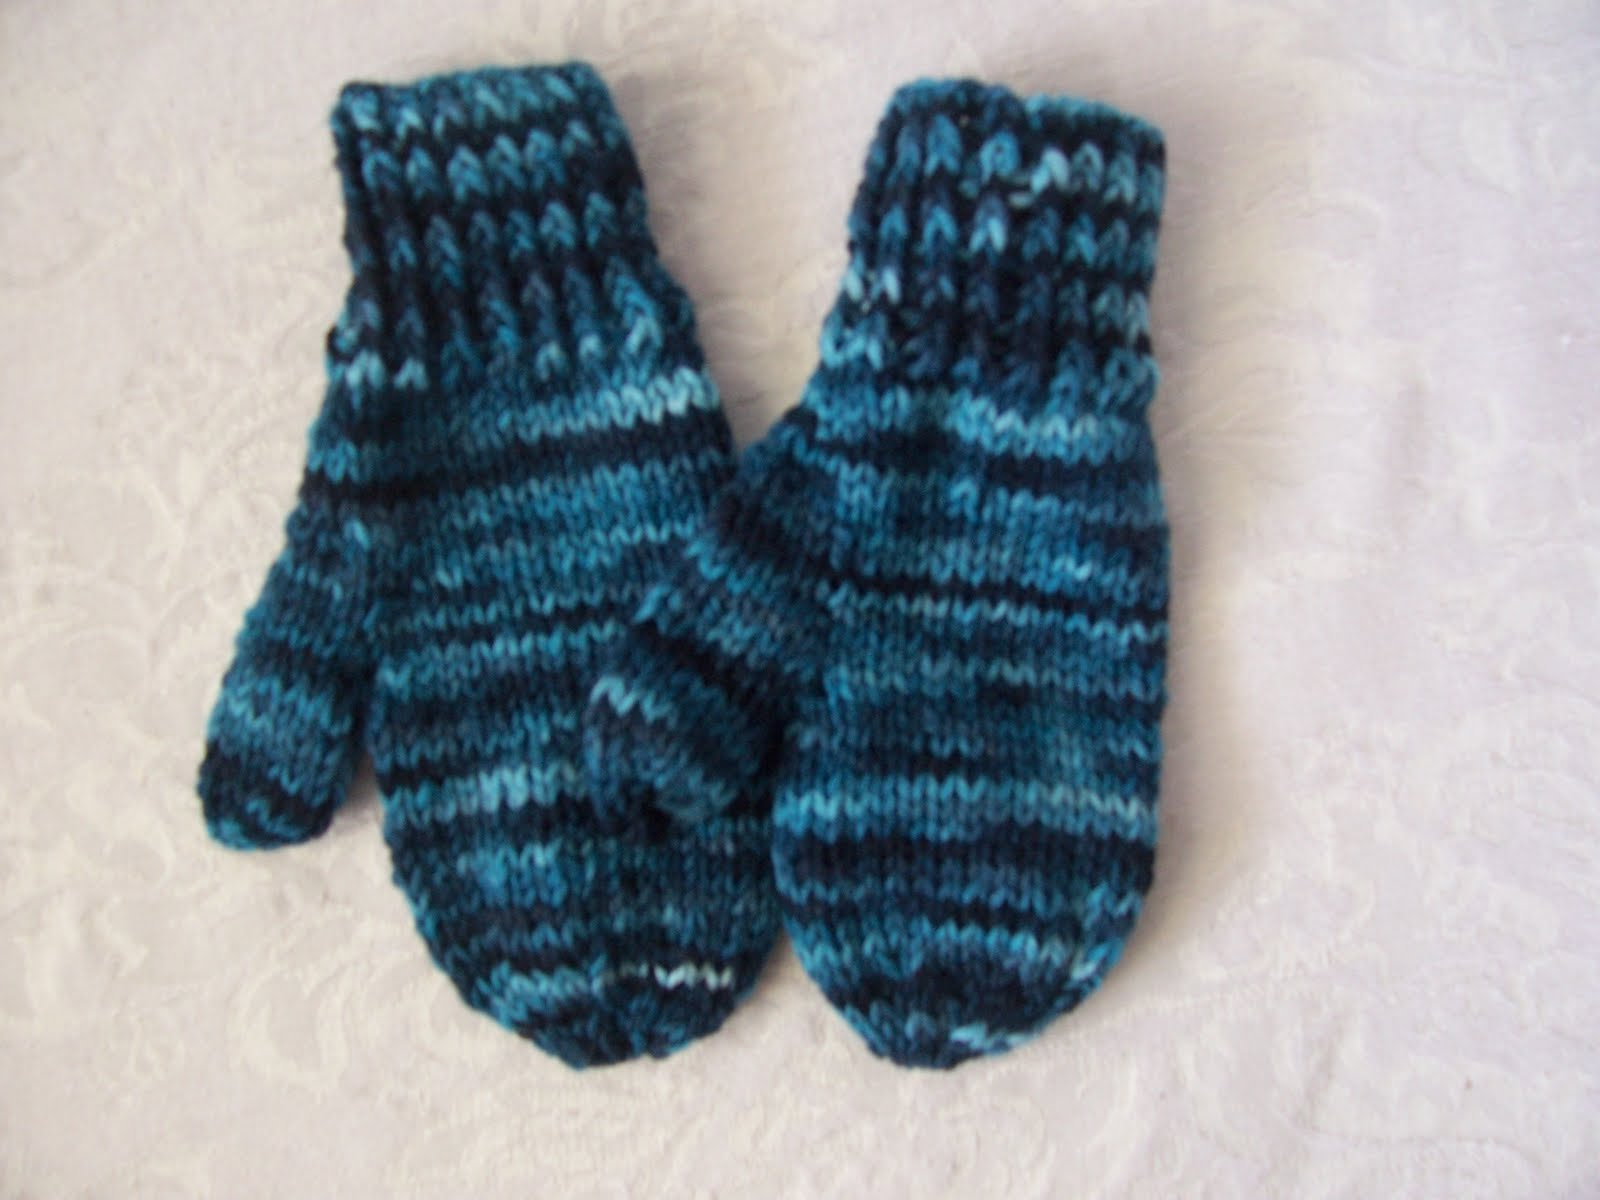 Knitting Pattern For Children s Mittens On Two Needles : Knitting for Peace: Childrens Mittens